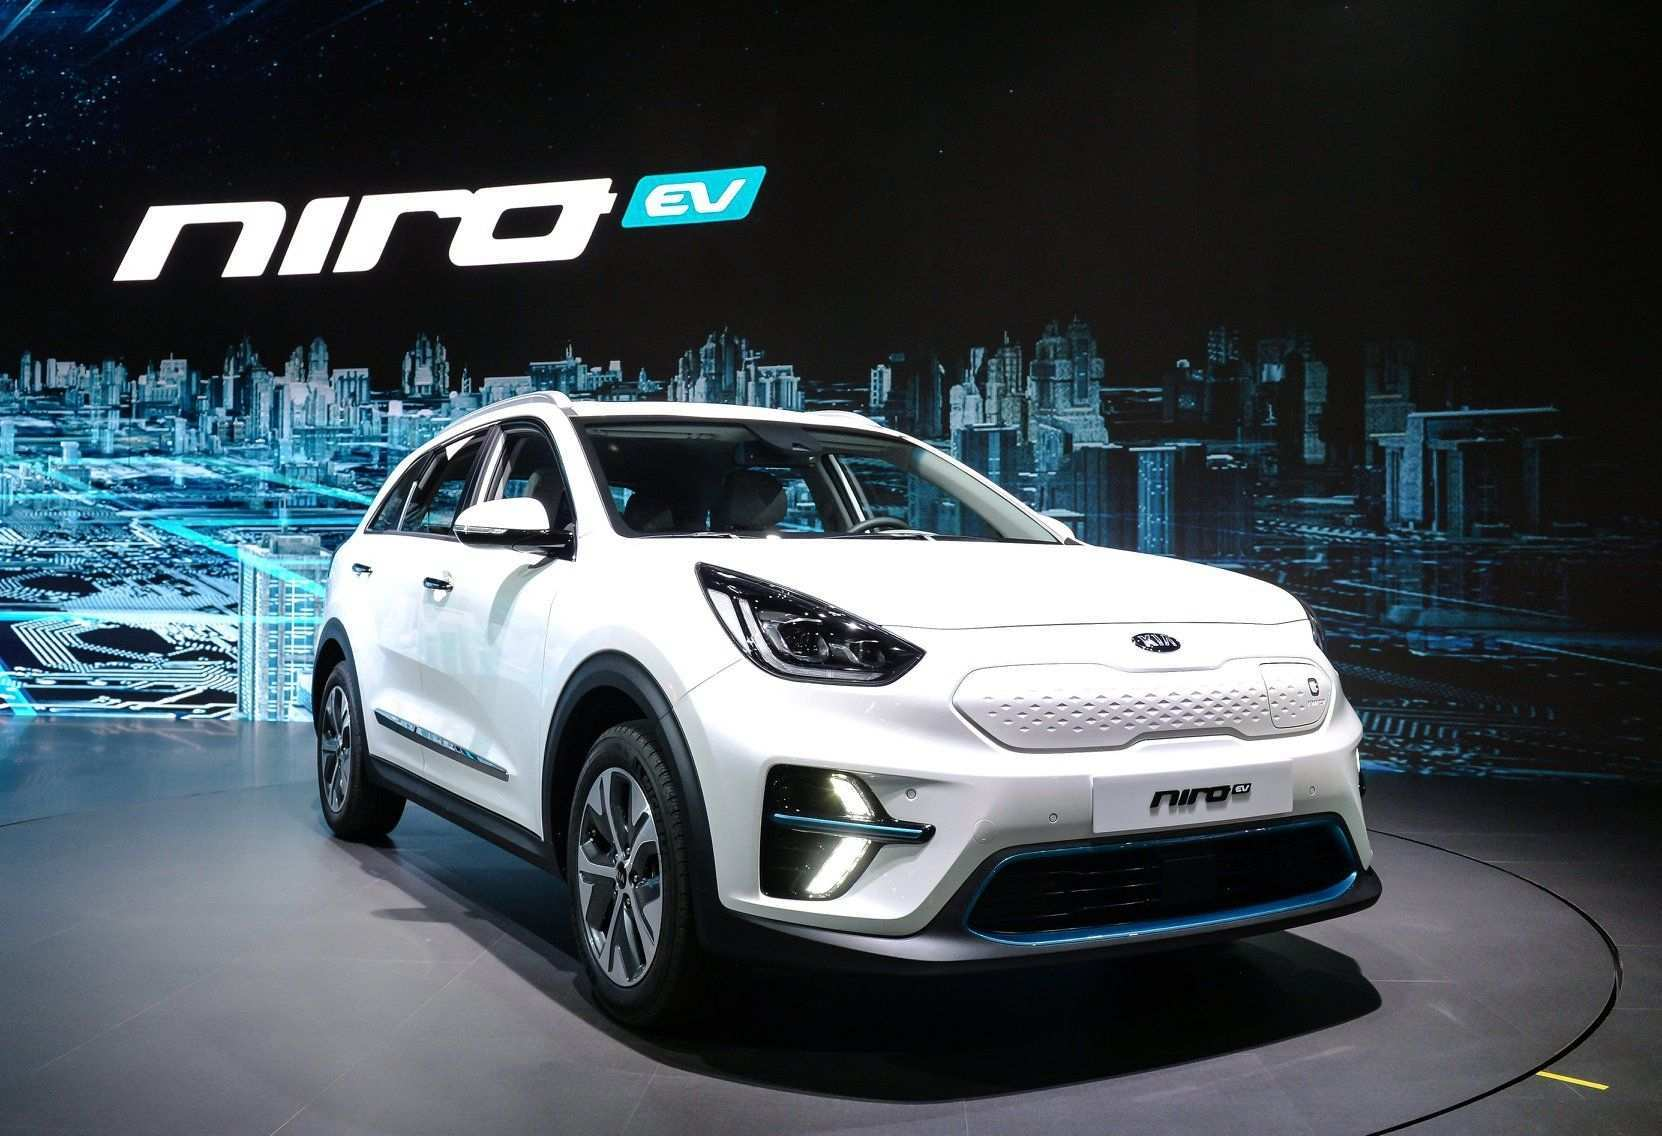 41 Concept of Best Kia Tucson 2019 Concept Redesign And Review Review by Best Kia Tucson 2019 Concept Redesign And Review